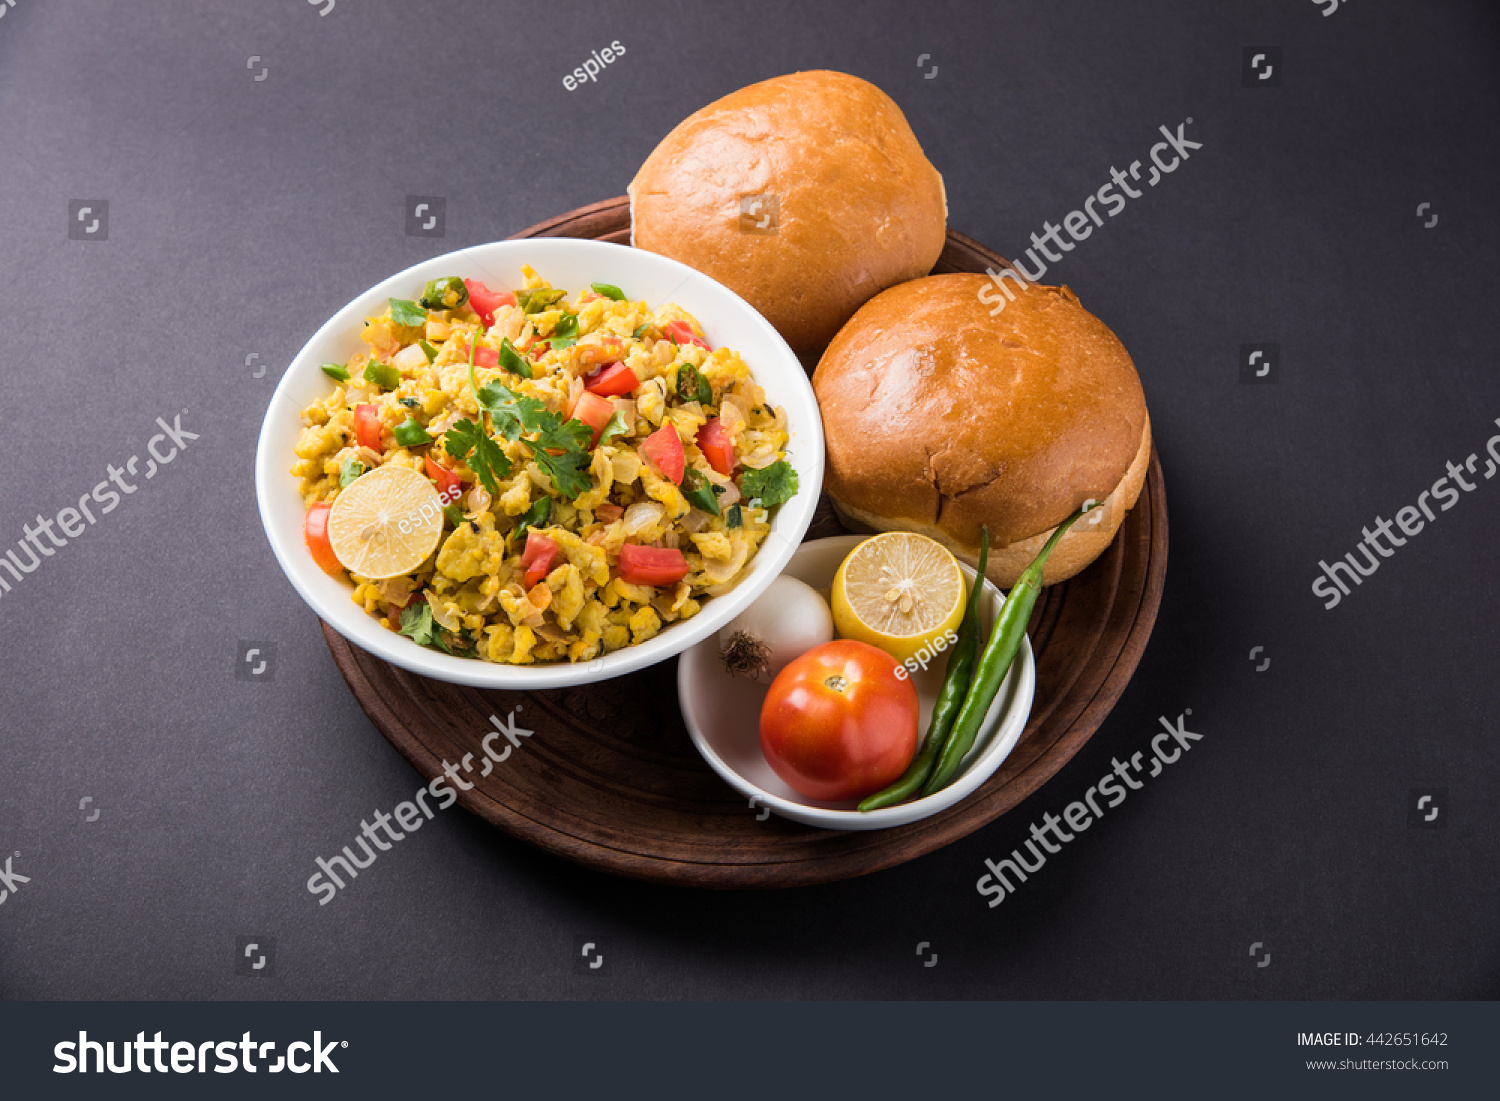 Egg bhurji or Spicy scrambled eggs with bread slices or pav or paav ...